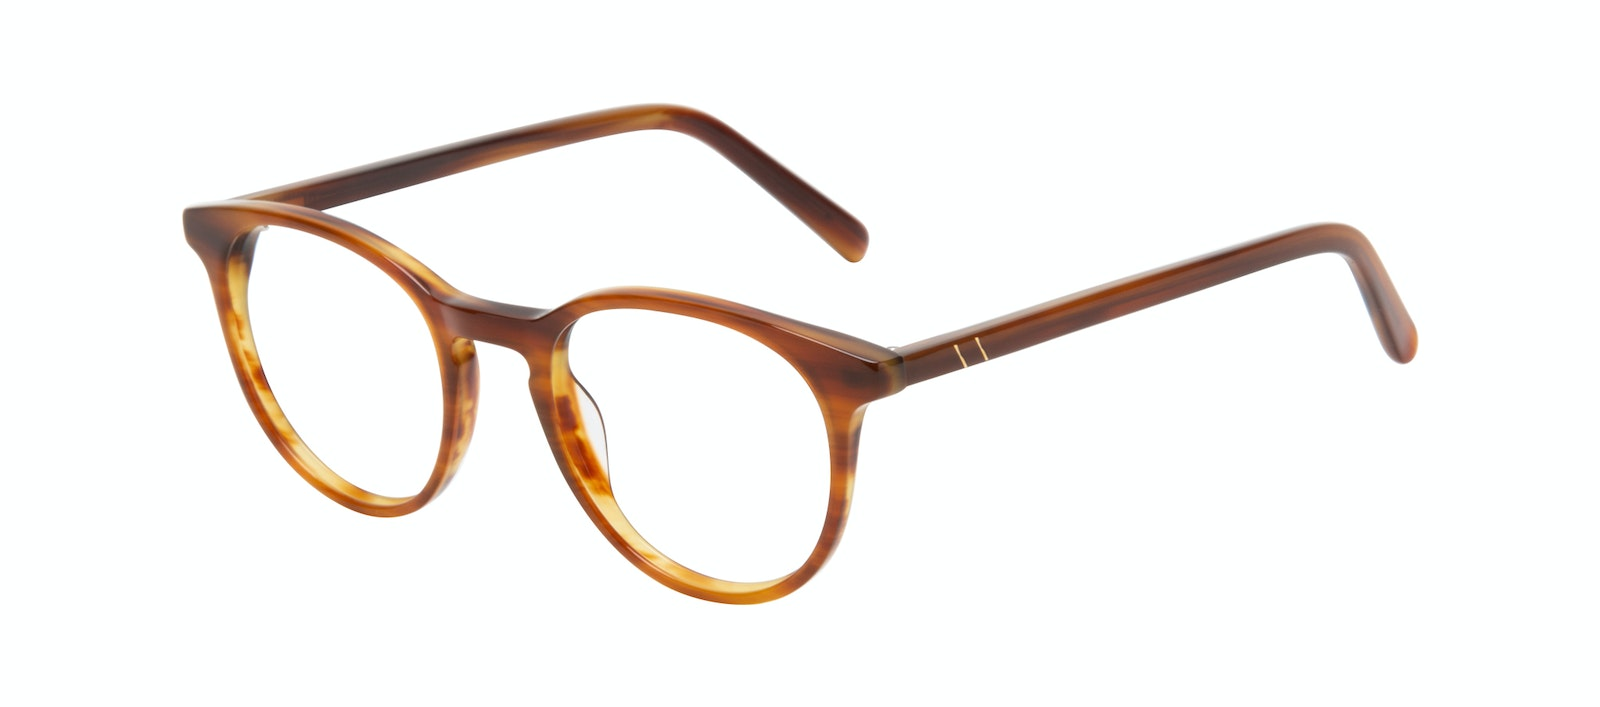 Affordable Fashion Glasses Round Eyeglasses Men Select Havana Tilt